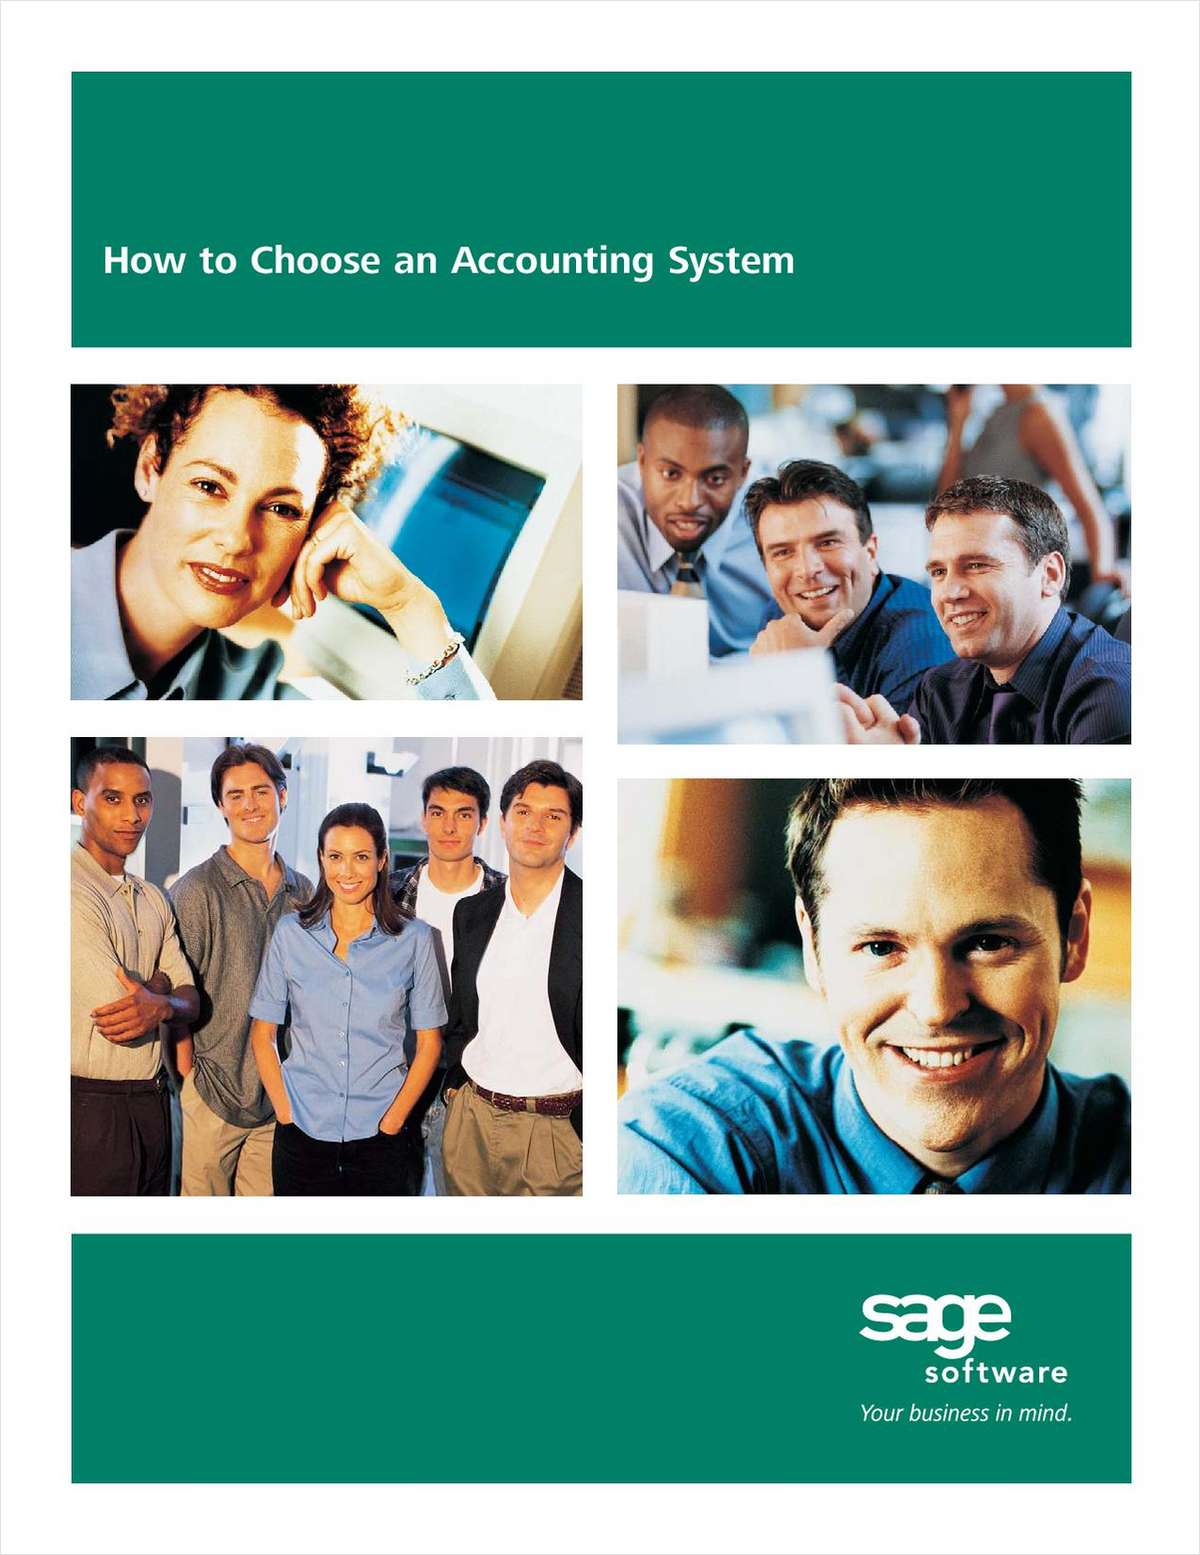 Choosing an Accounting System